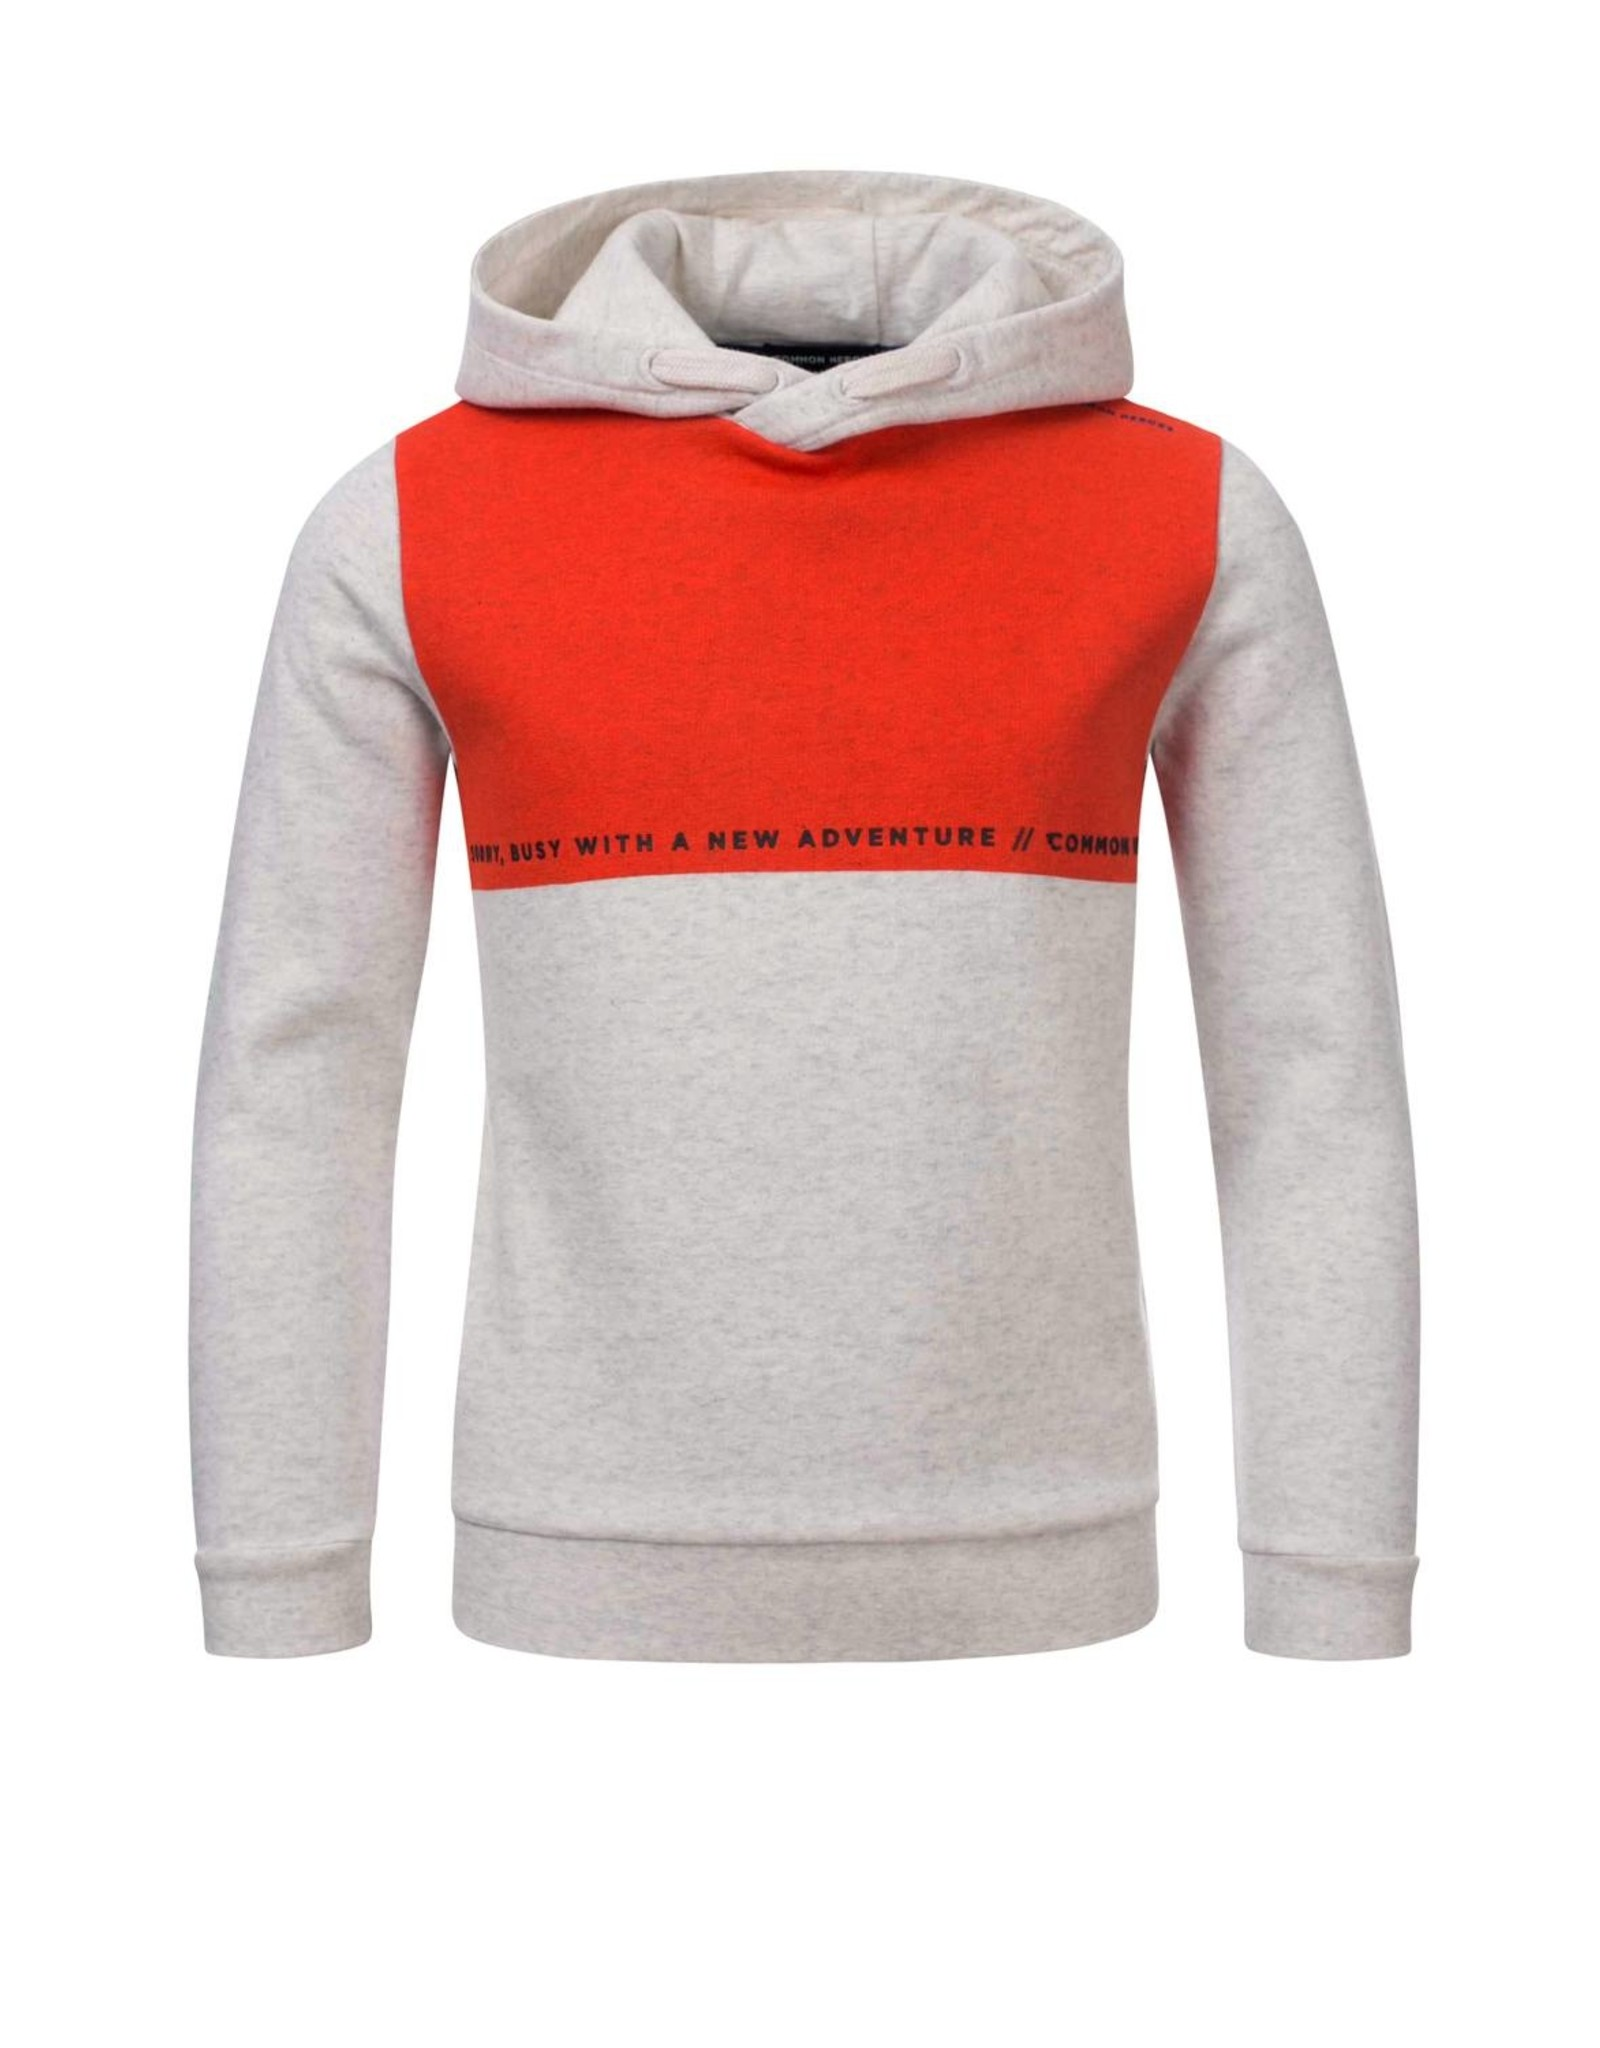 Common Heroes STEFAN Hoody sweater